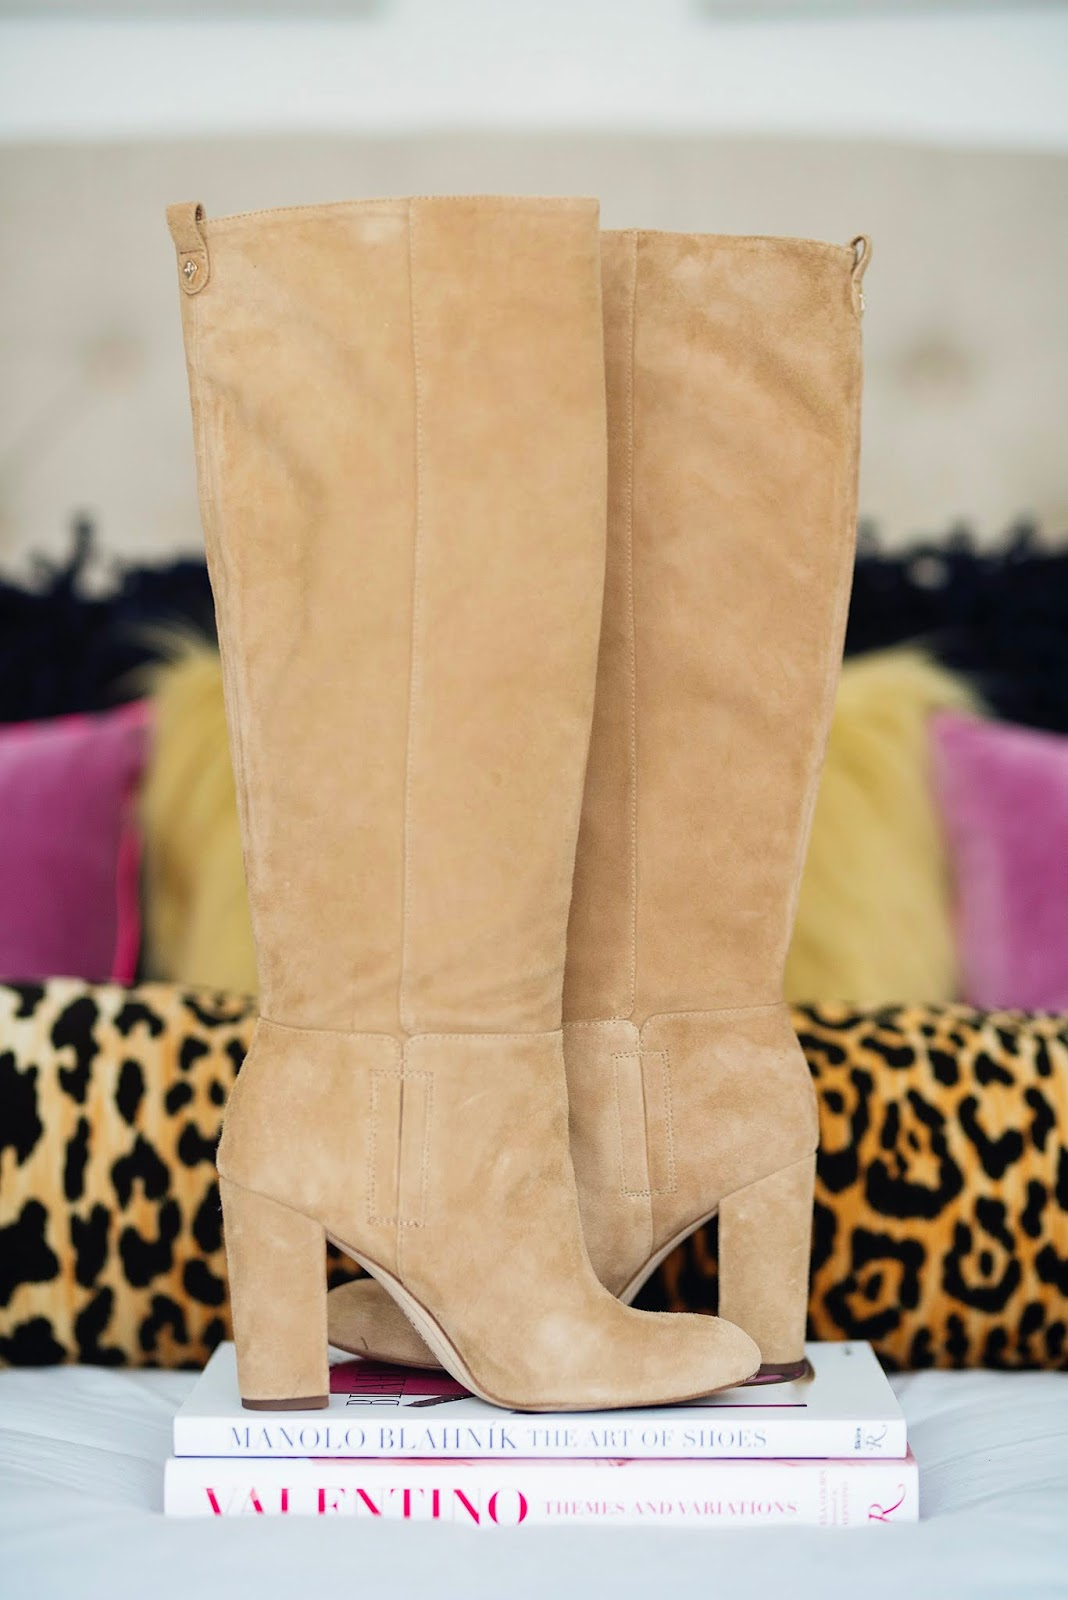 Nordstrom Anniversary Sale Sam Edelman Caprice Knee-High Boots - Something Delightful Blog